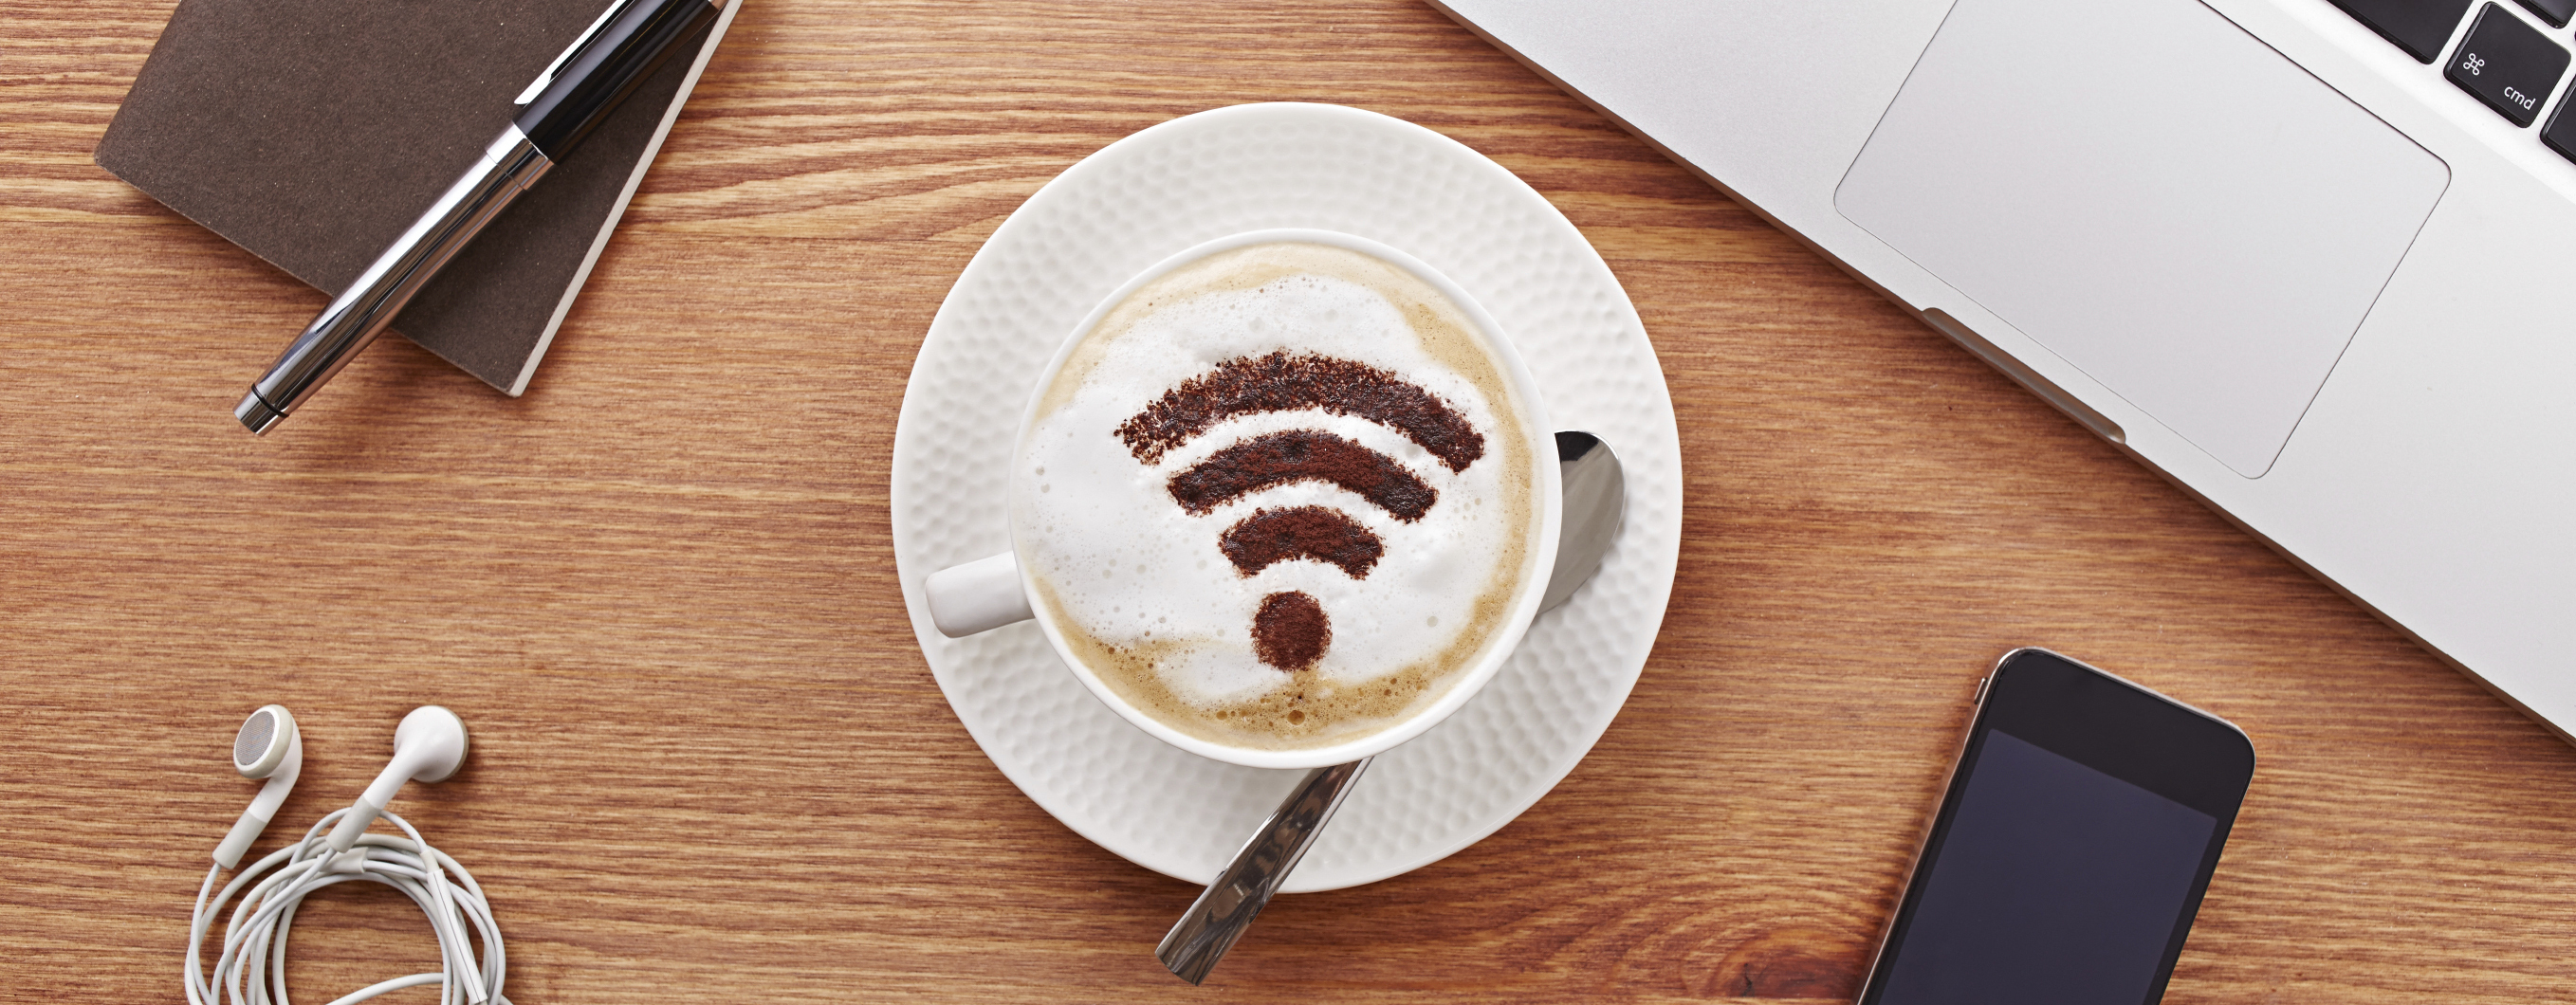 Should Your Restaurant Offer Free WiFi?